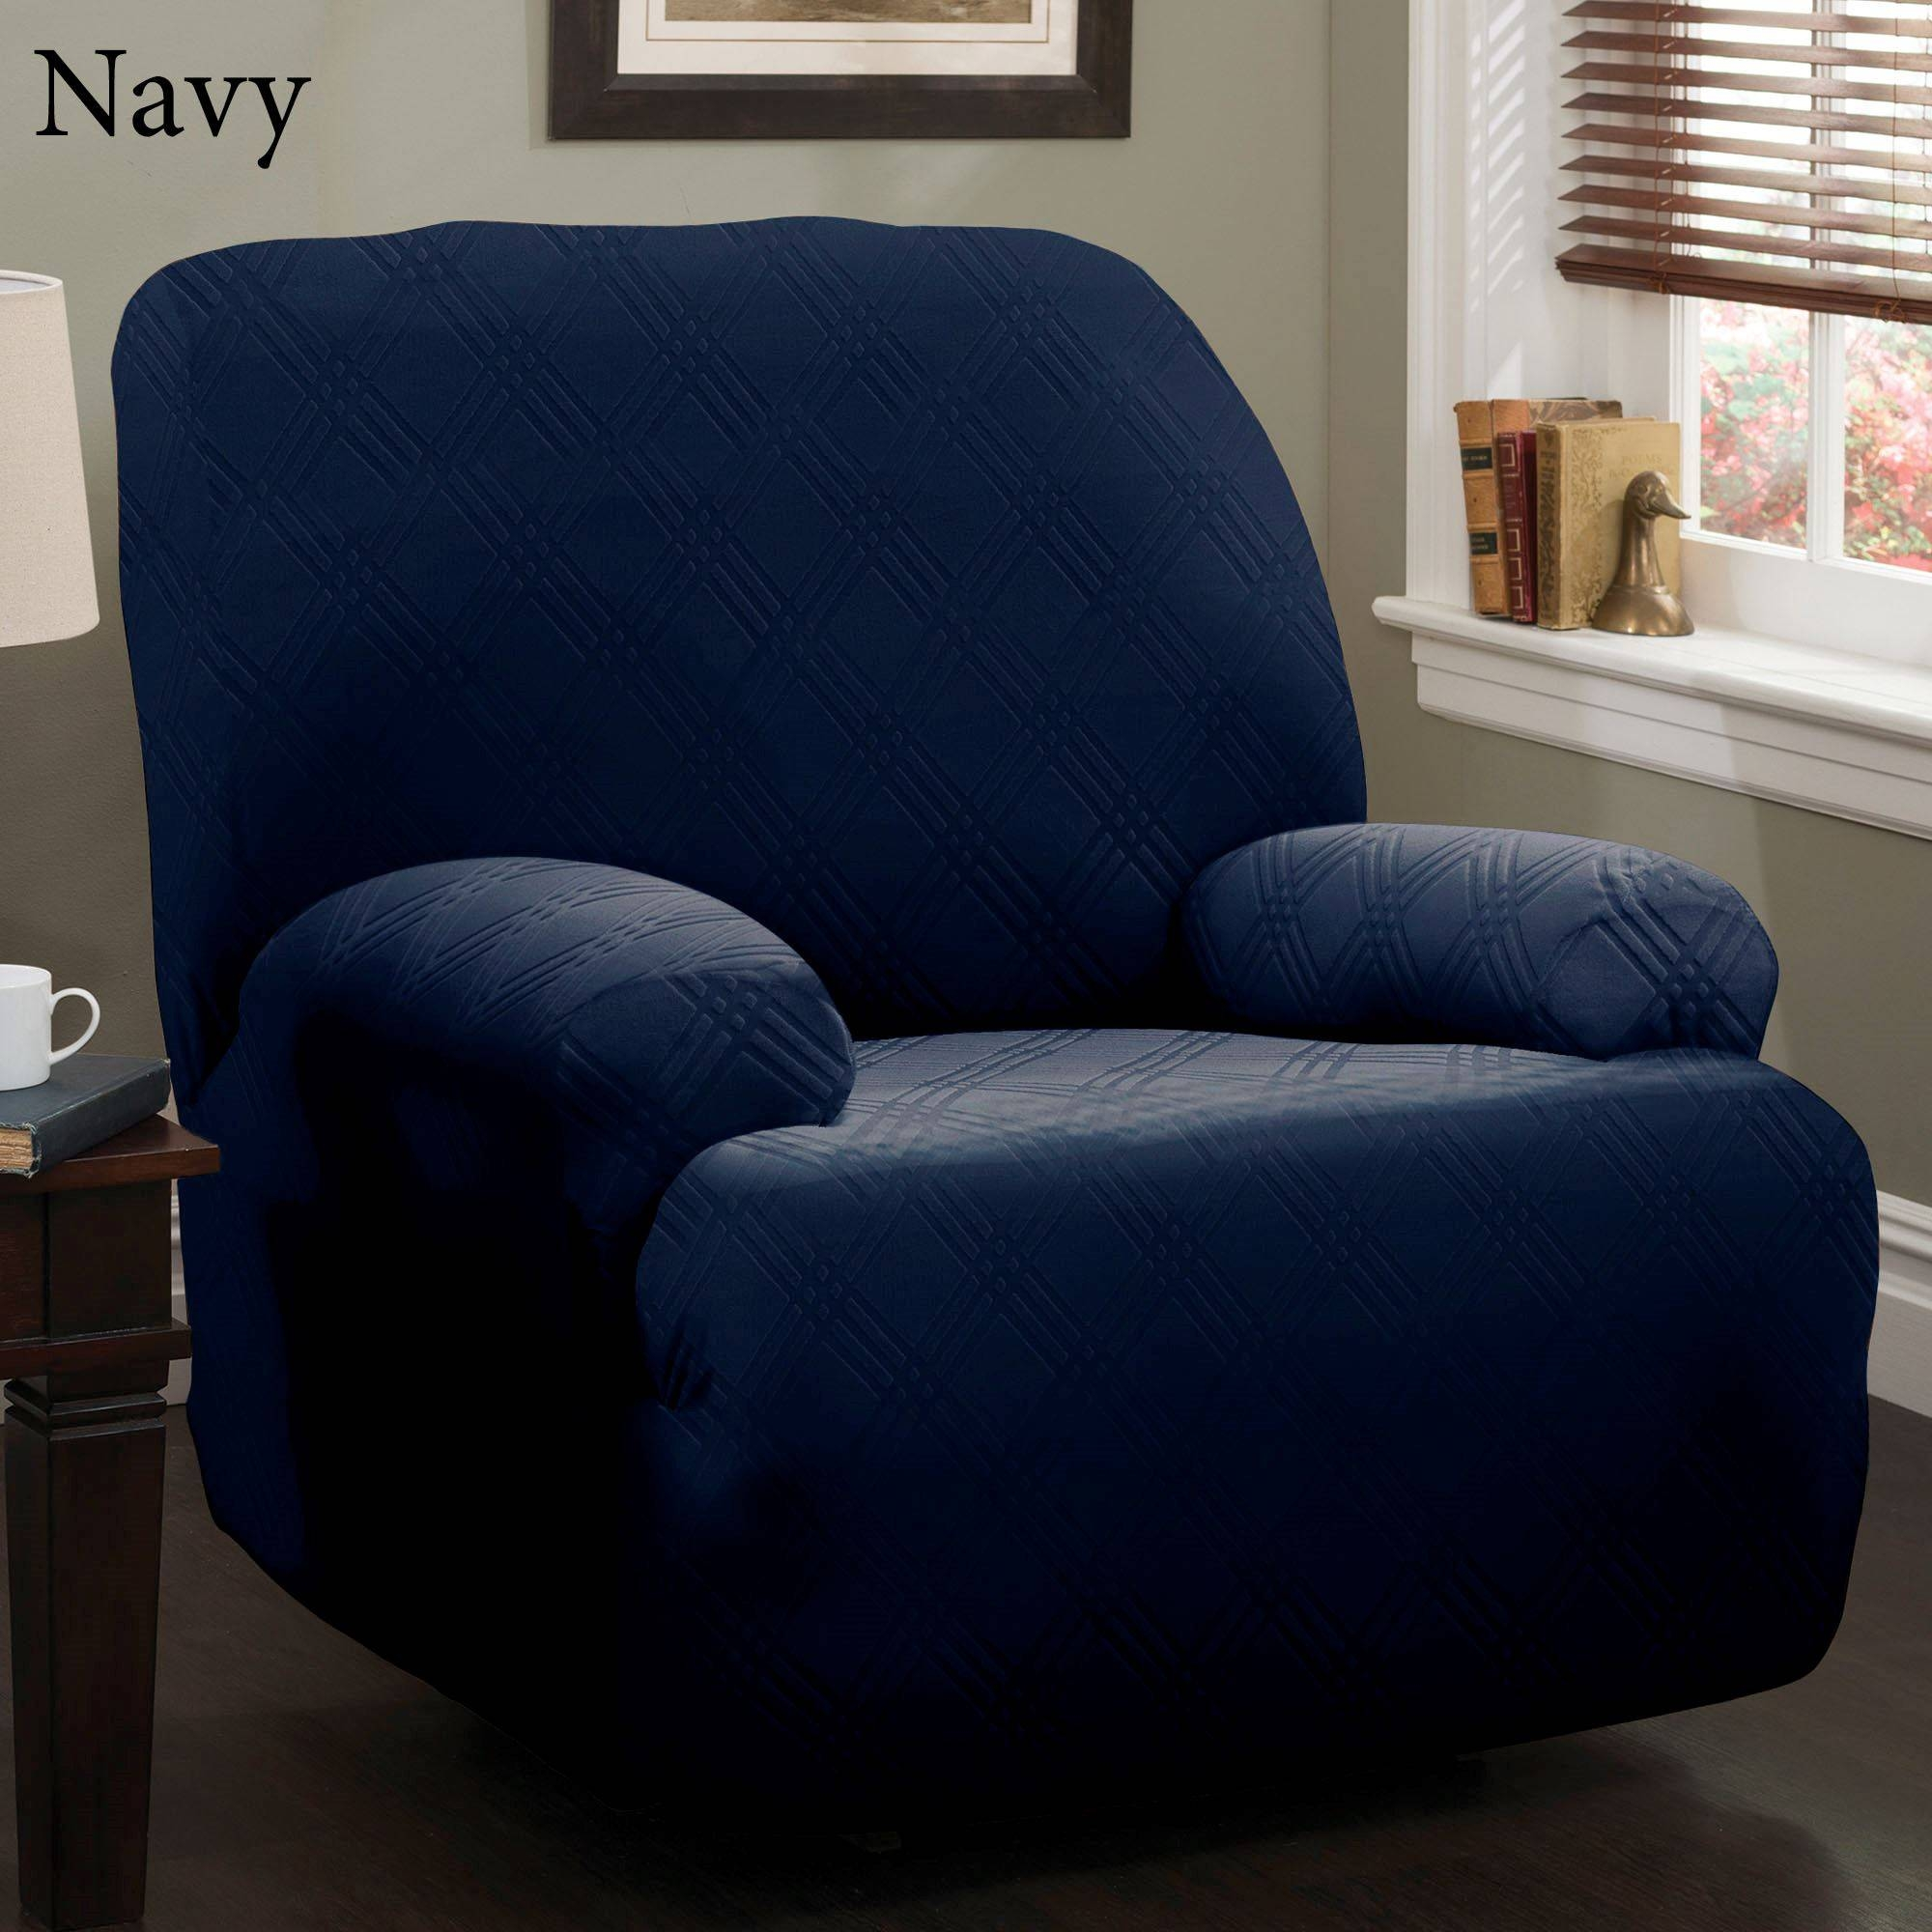 Double Diamond Stretch Jumbo Recliner Slipcovers with Blue Slipcovers (Image 3 of 15)